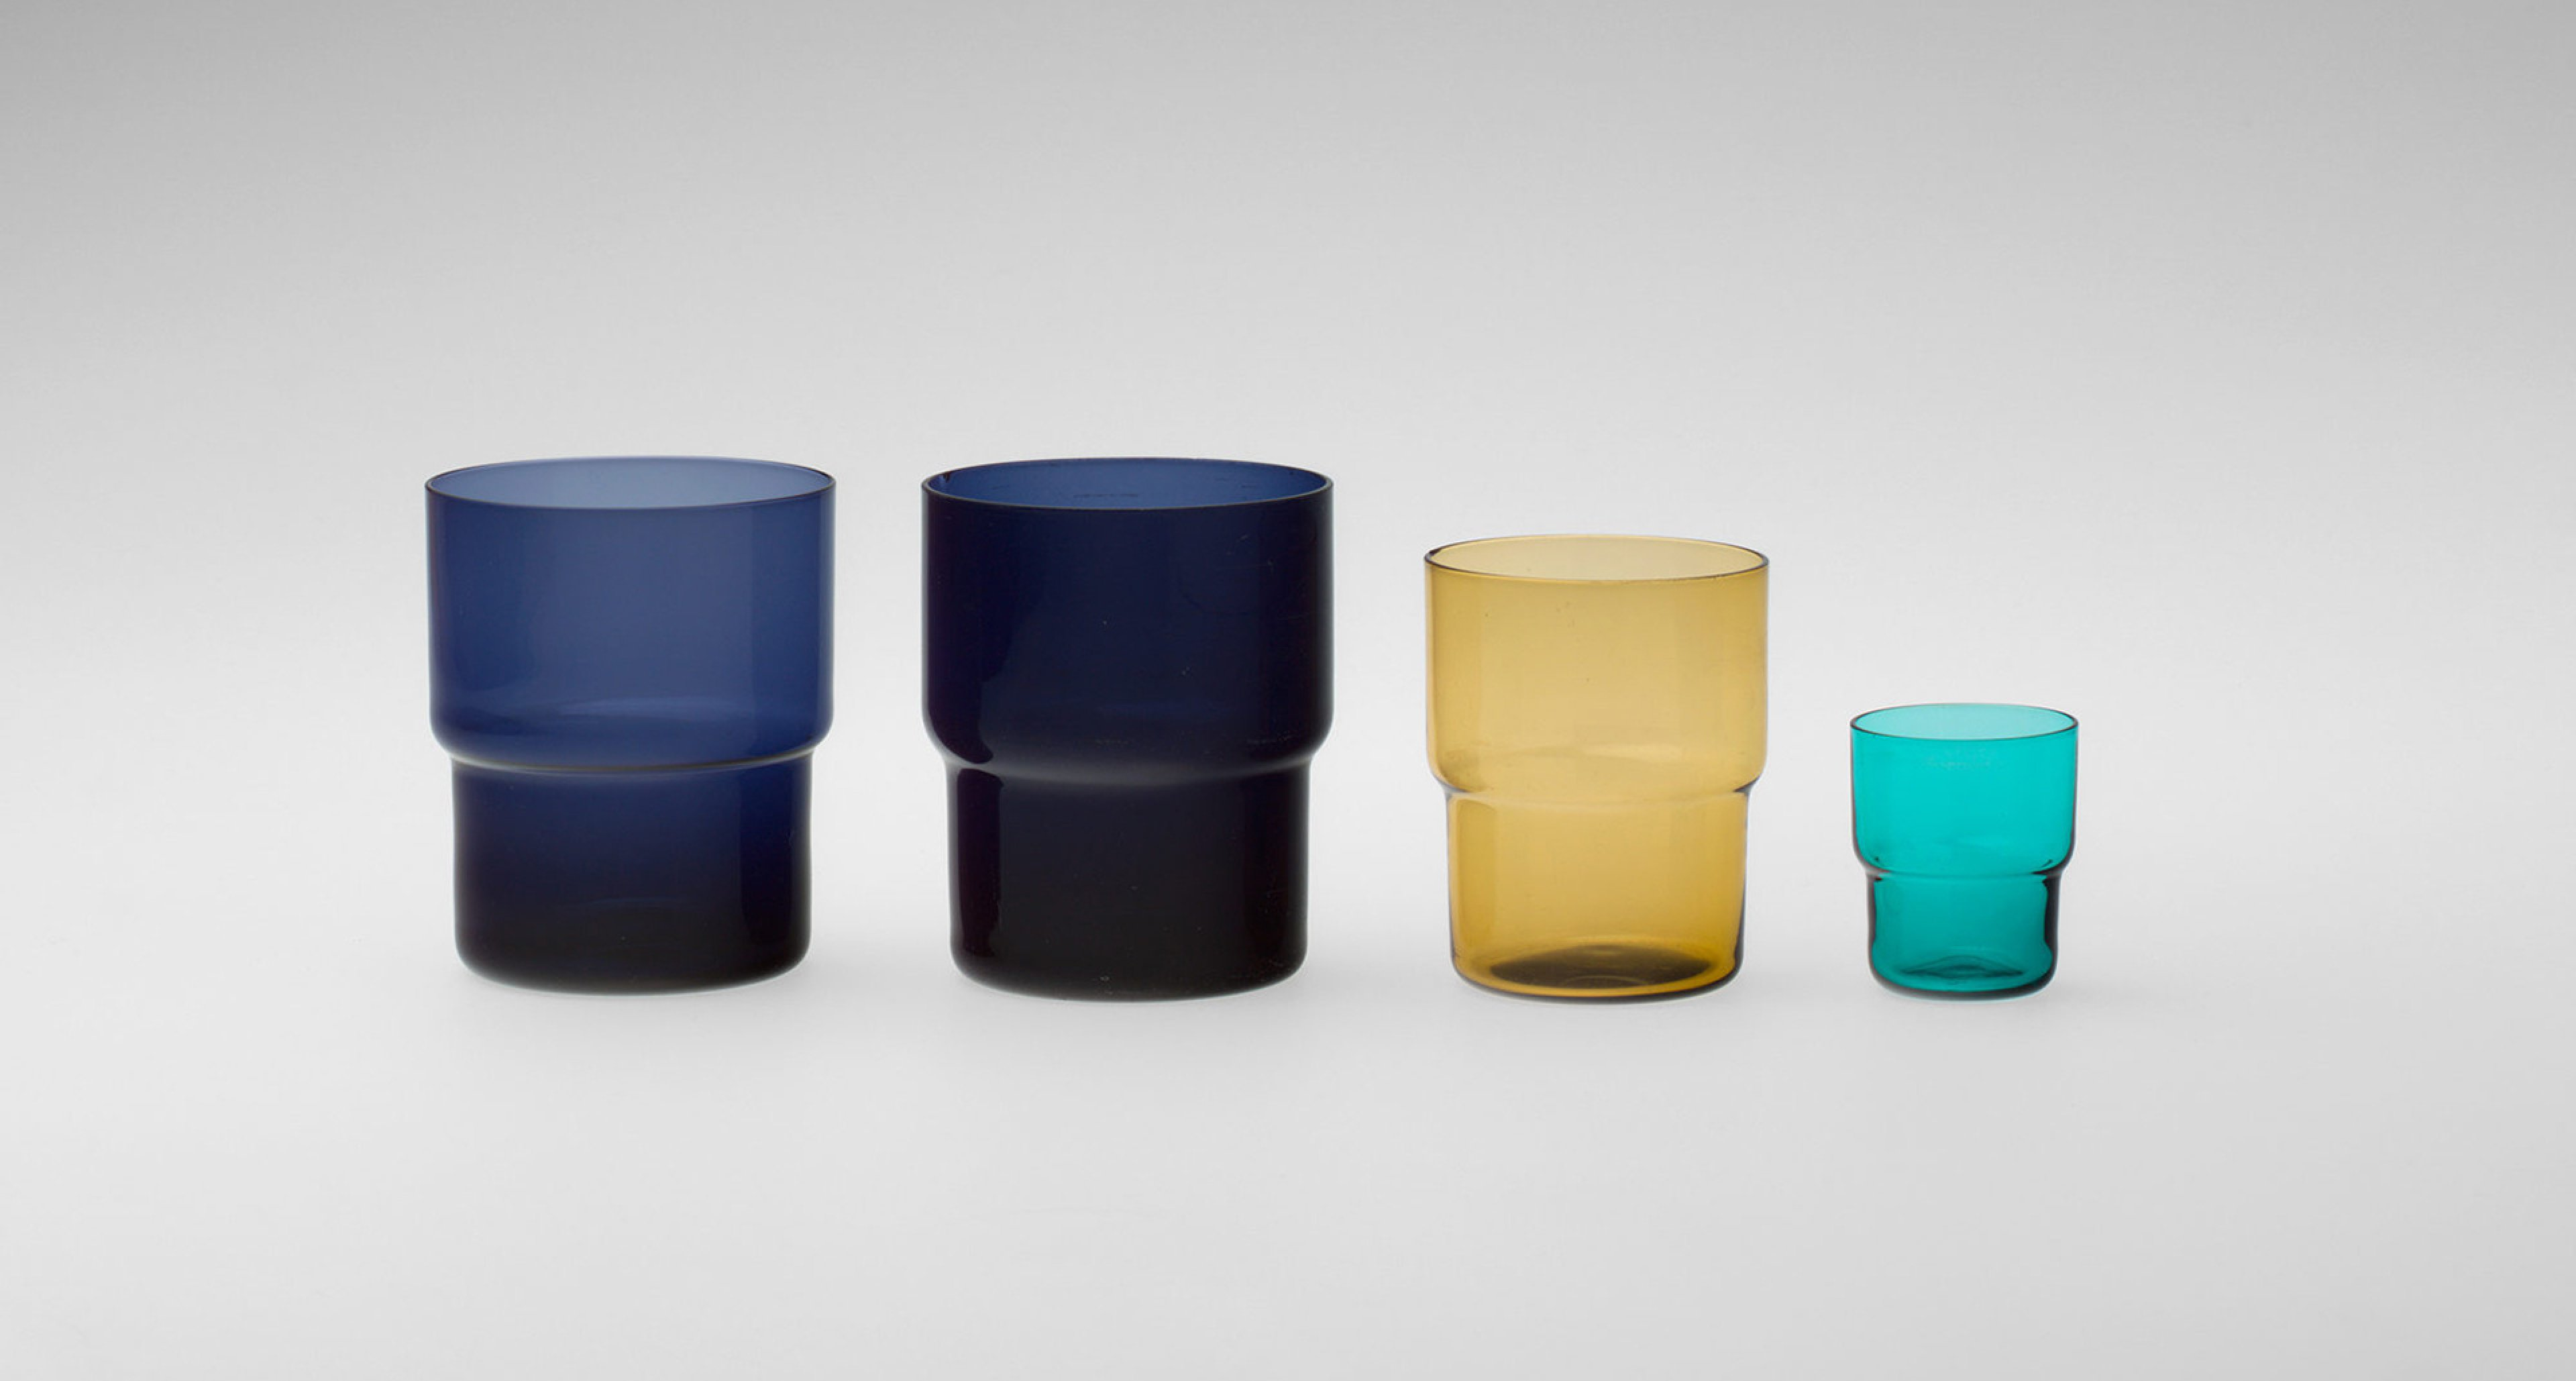 Saara Hopea (Finnish, 1925–1984). Stacking Glasses. 1951. Blown glass, .1‑.2 (blue): 3 3/8 × 2 7/8″ (8.6 × 7.3 cm); .3 (yellow): 2 15/16 x 2 3/8″ (7.5 x 6 cm); .4 (turquoise): 1 7/8 x 1 9/16″ (4.7 x 4 cm). Manufactured by Nuutajärvi Glass Works (Wärtsilä,